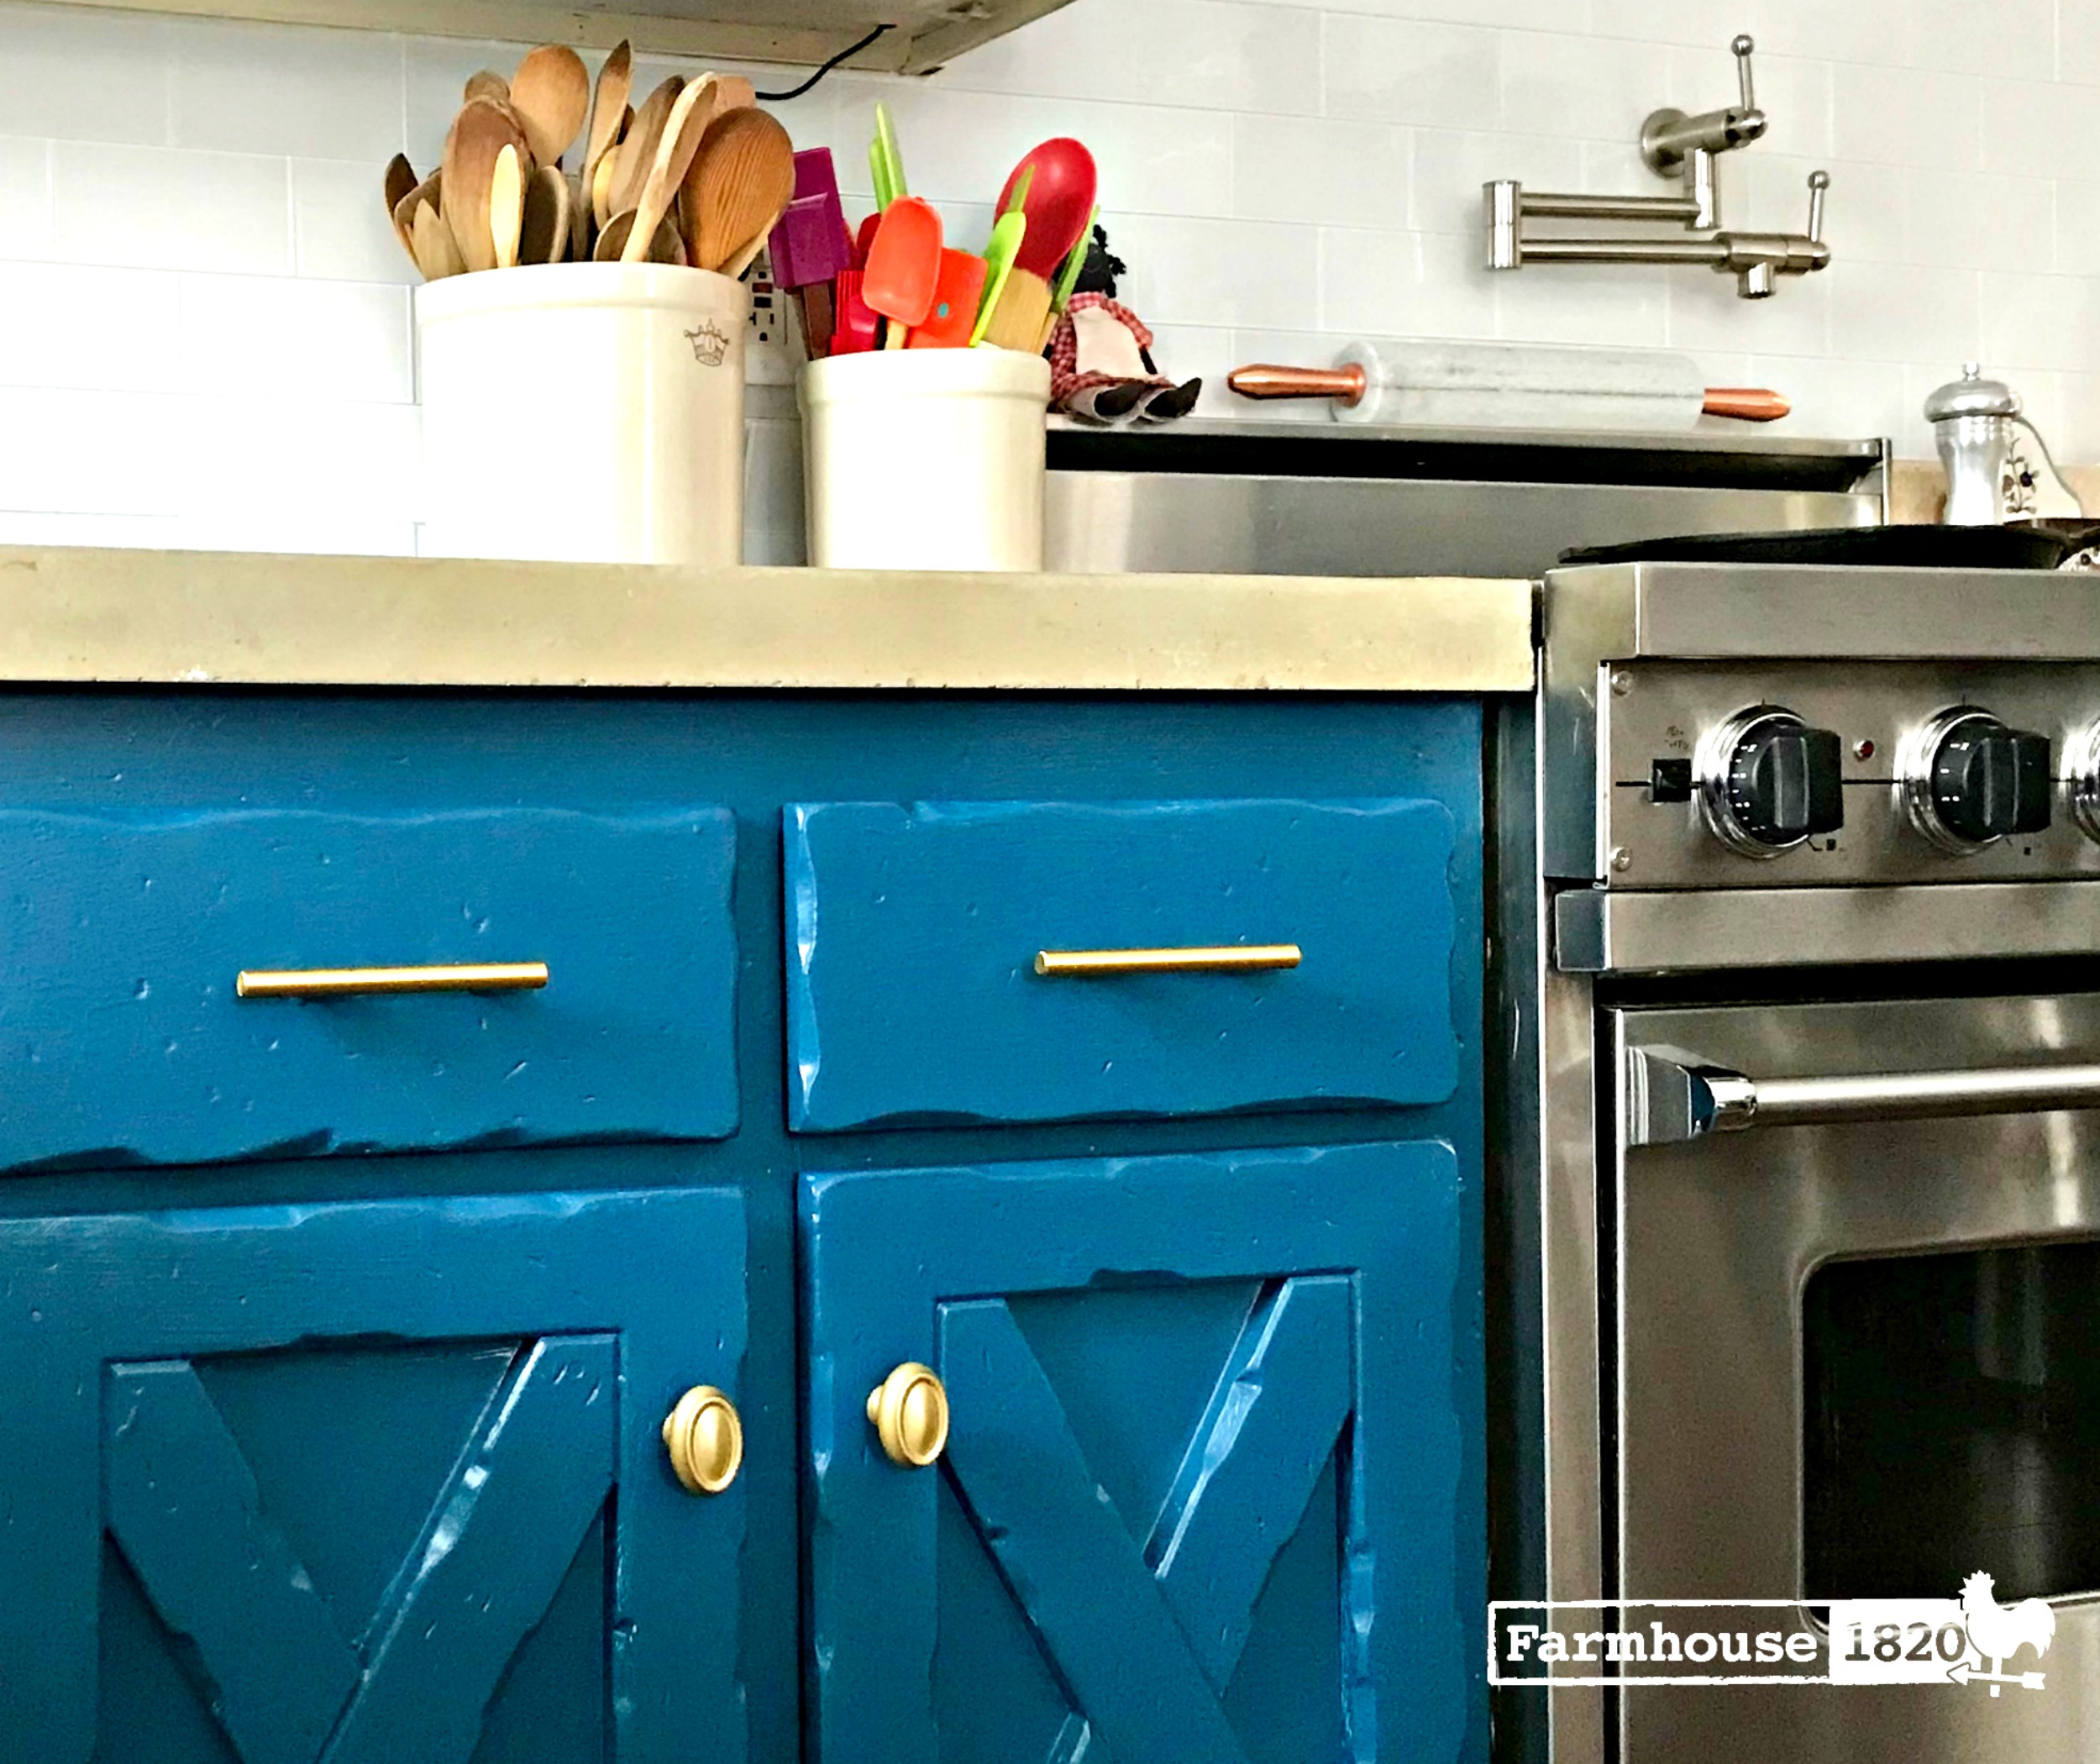 Kitchen cabinets - a new face